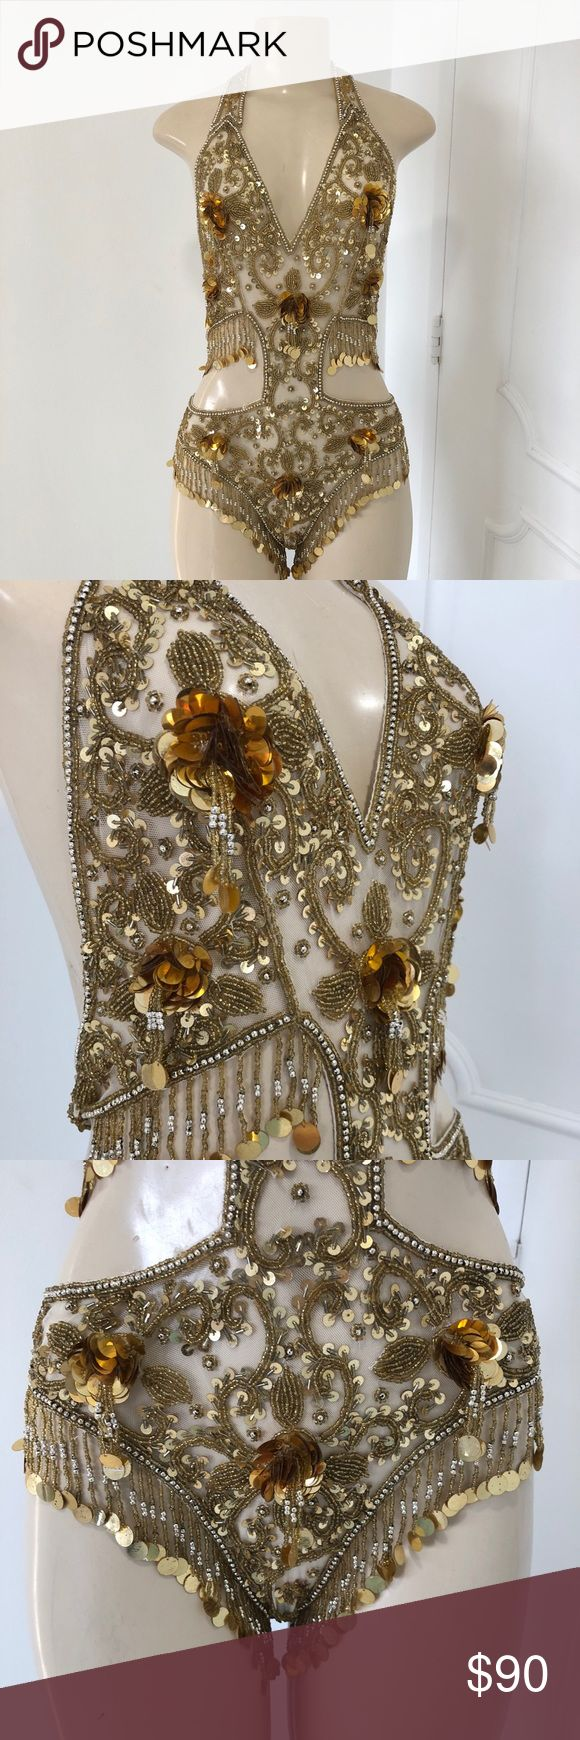 One piece belly dance bodysuit Condition: This Gorgeous One piece belly dance bodysuit in good Pre Owned condition, only clasp need some fix , understand it is best to clean item before wearing. You will receive item as pictured! If you have any questions please let me know! Other